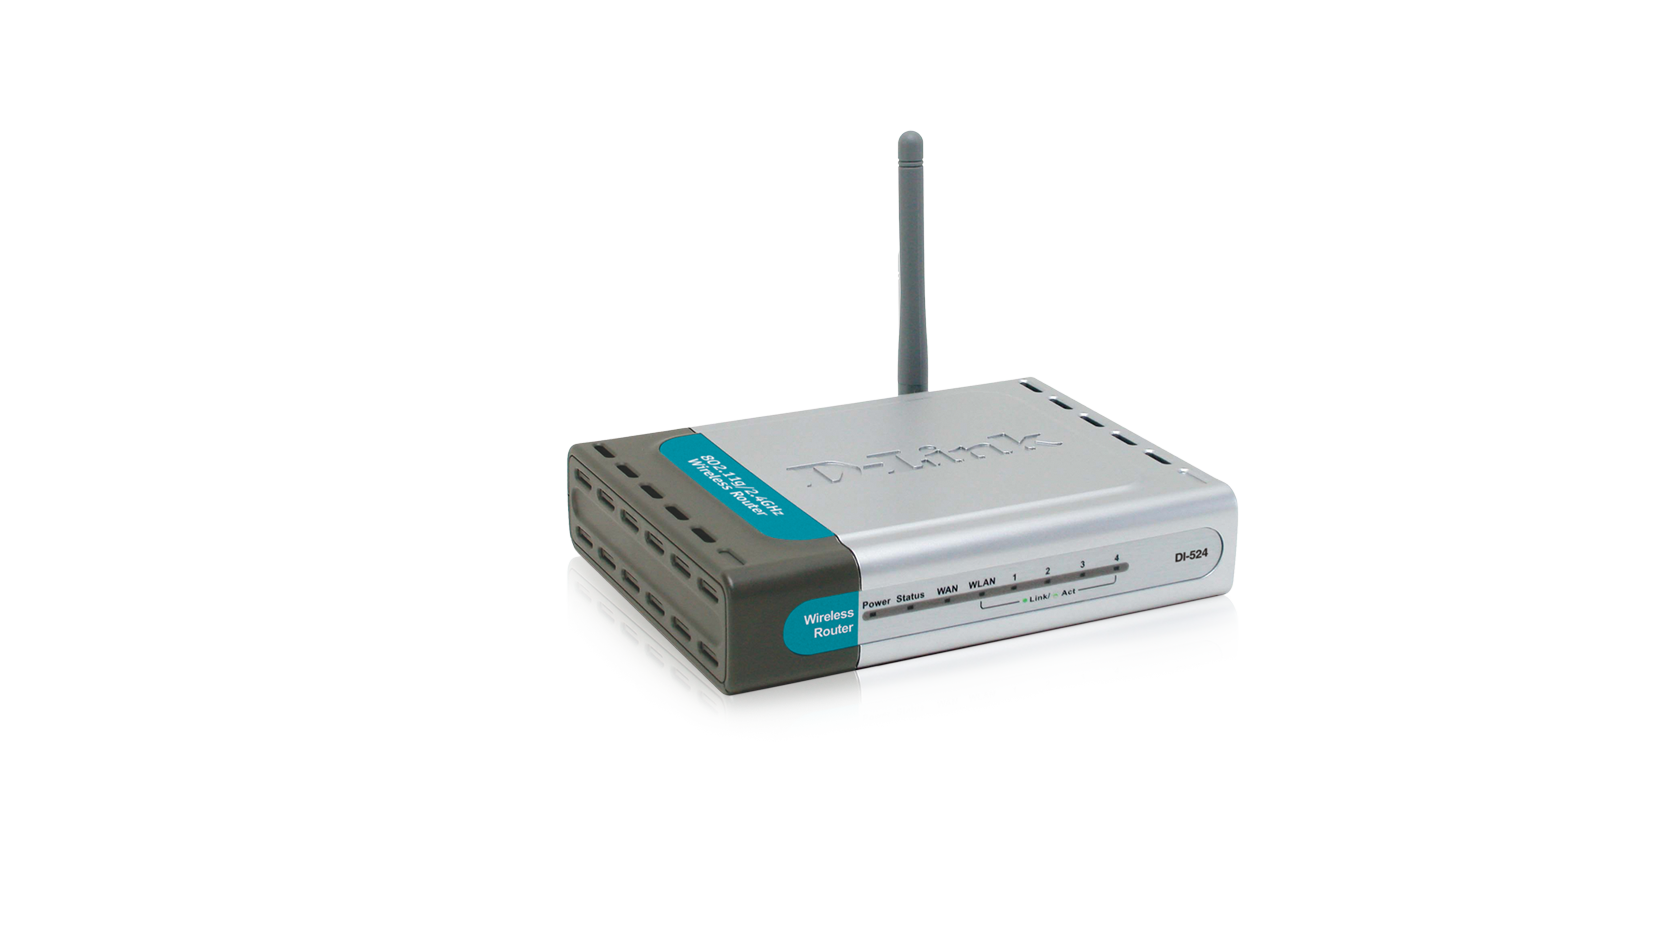 DI-524 802 11g Wireless Broadband Router | D-Link UK